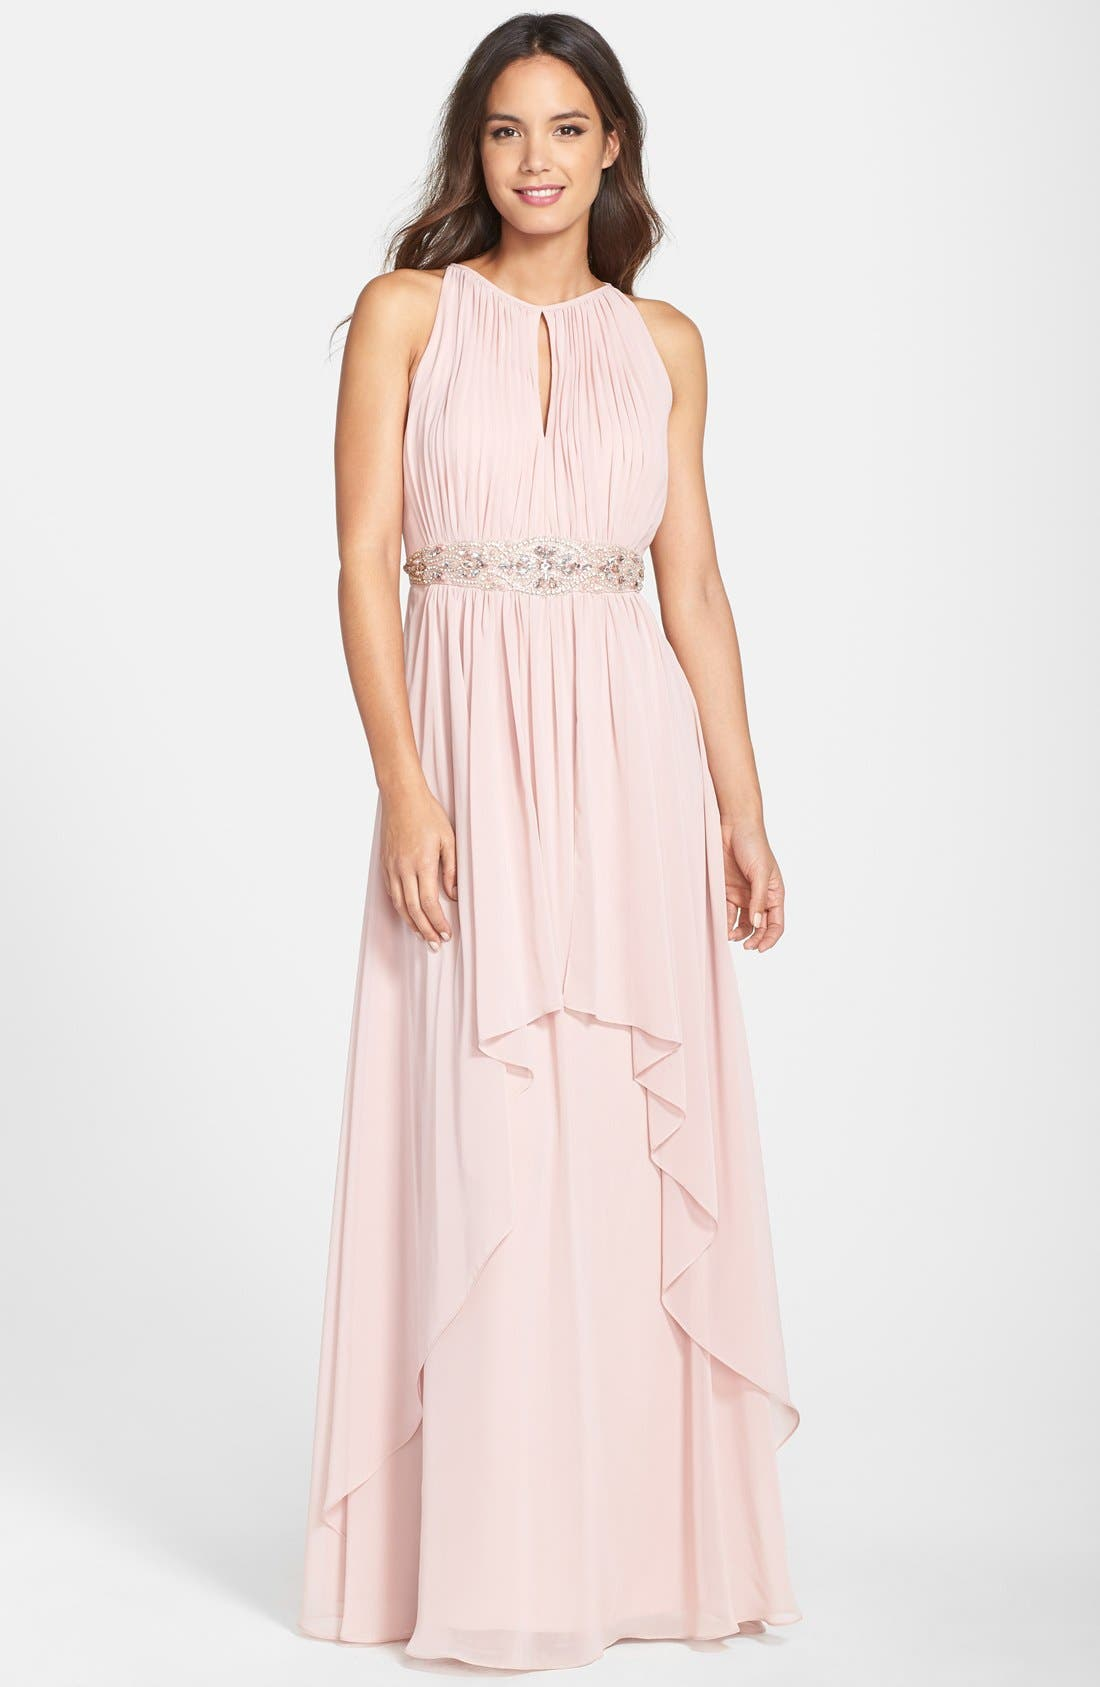 Alternate Image 1 Selected - Eliza J Embellished Chiffon Gown (Petite)